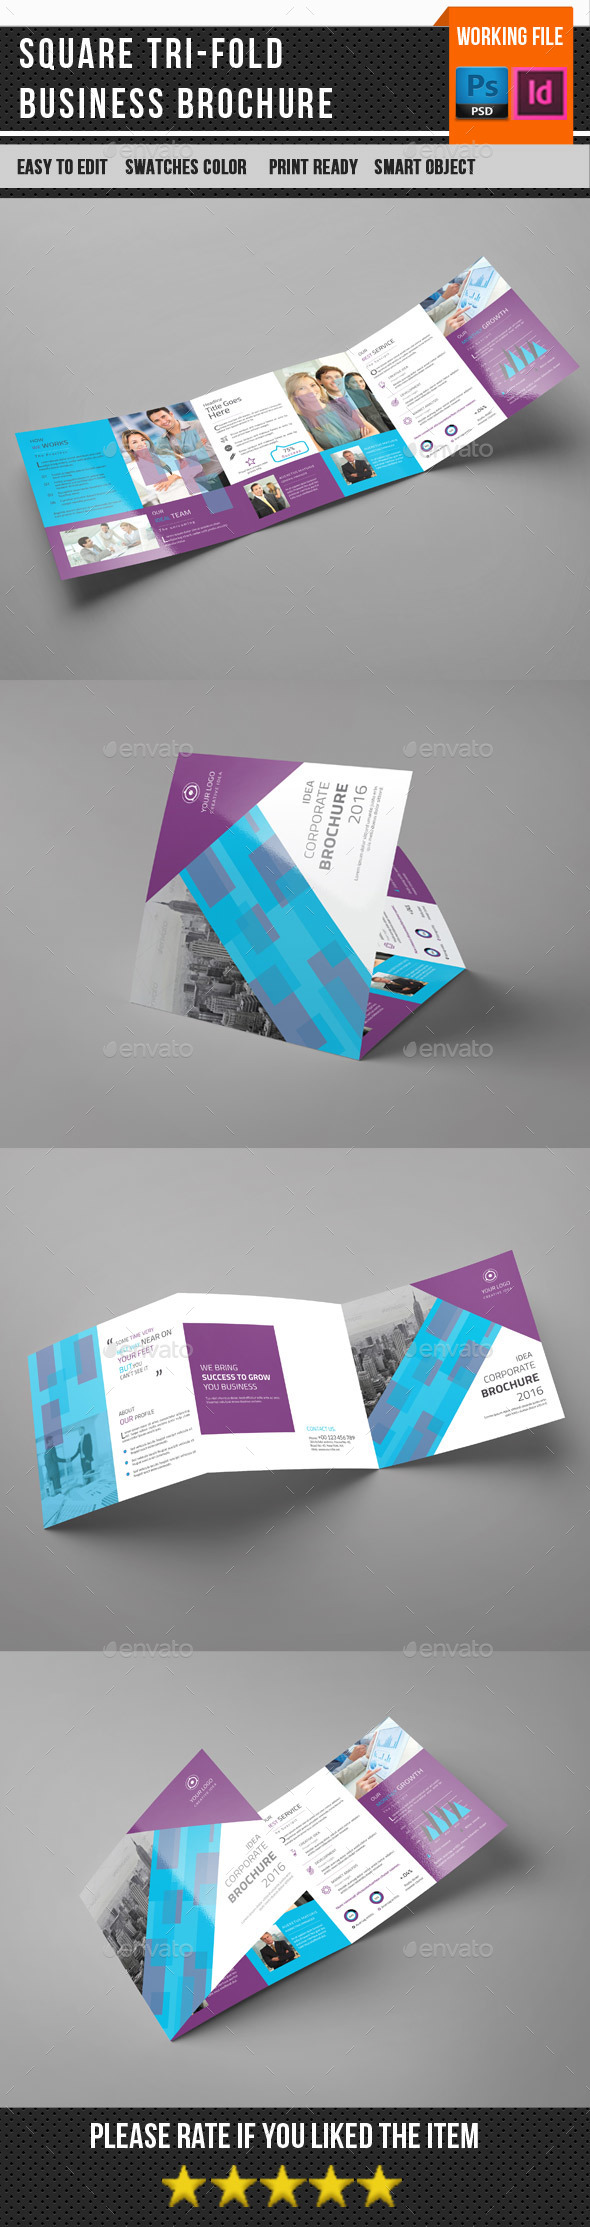 Square Trifold Corporate Brochure-V84 - Corporate Brochures